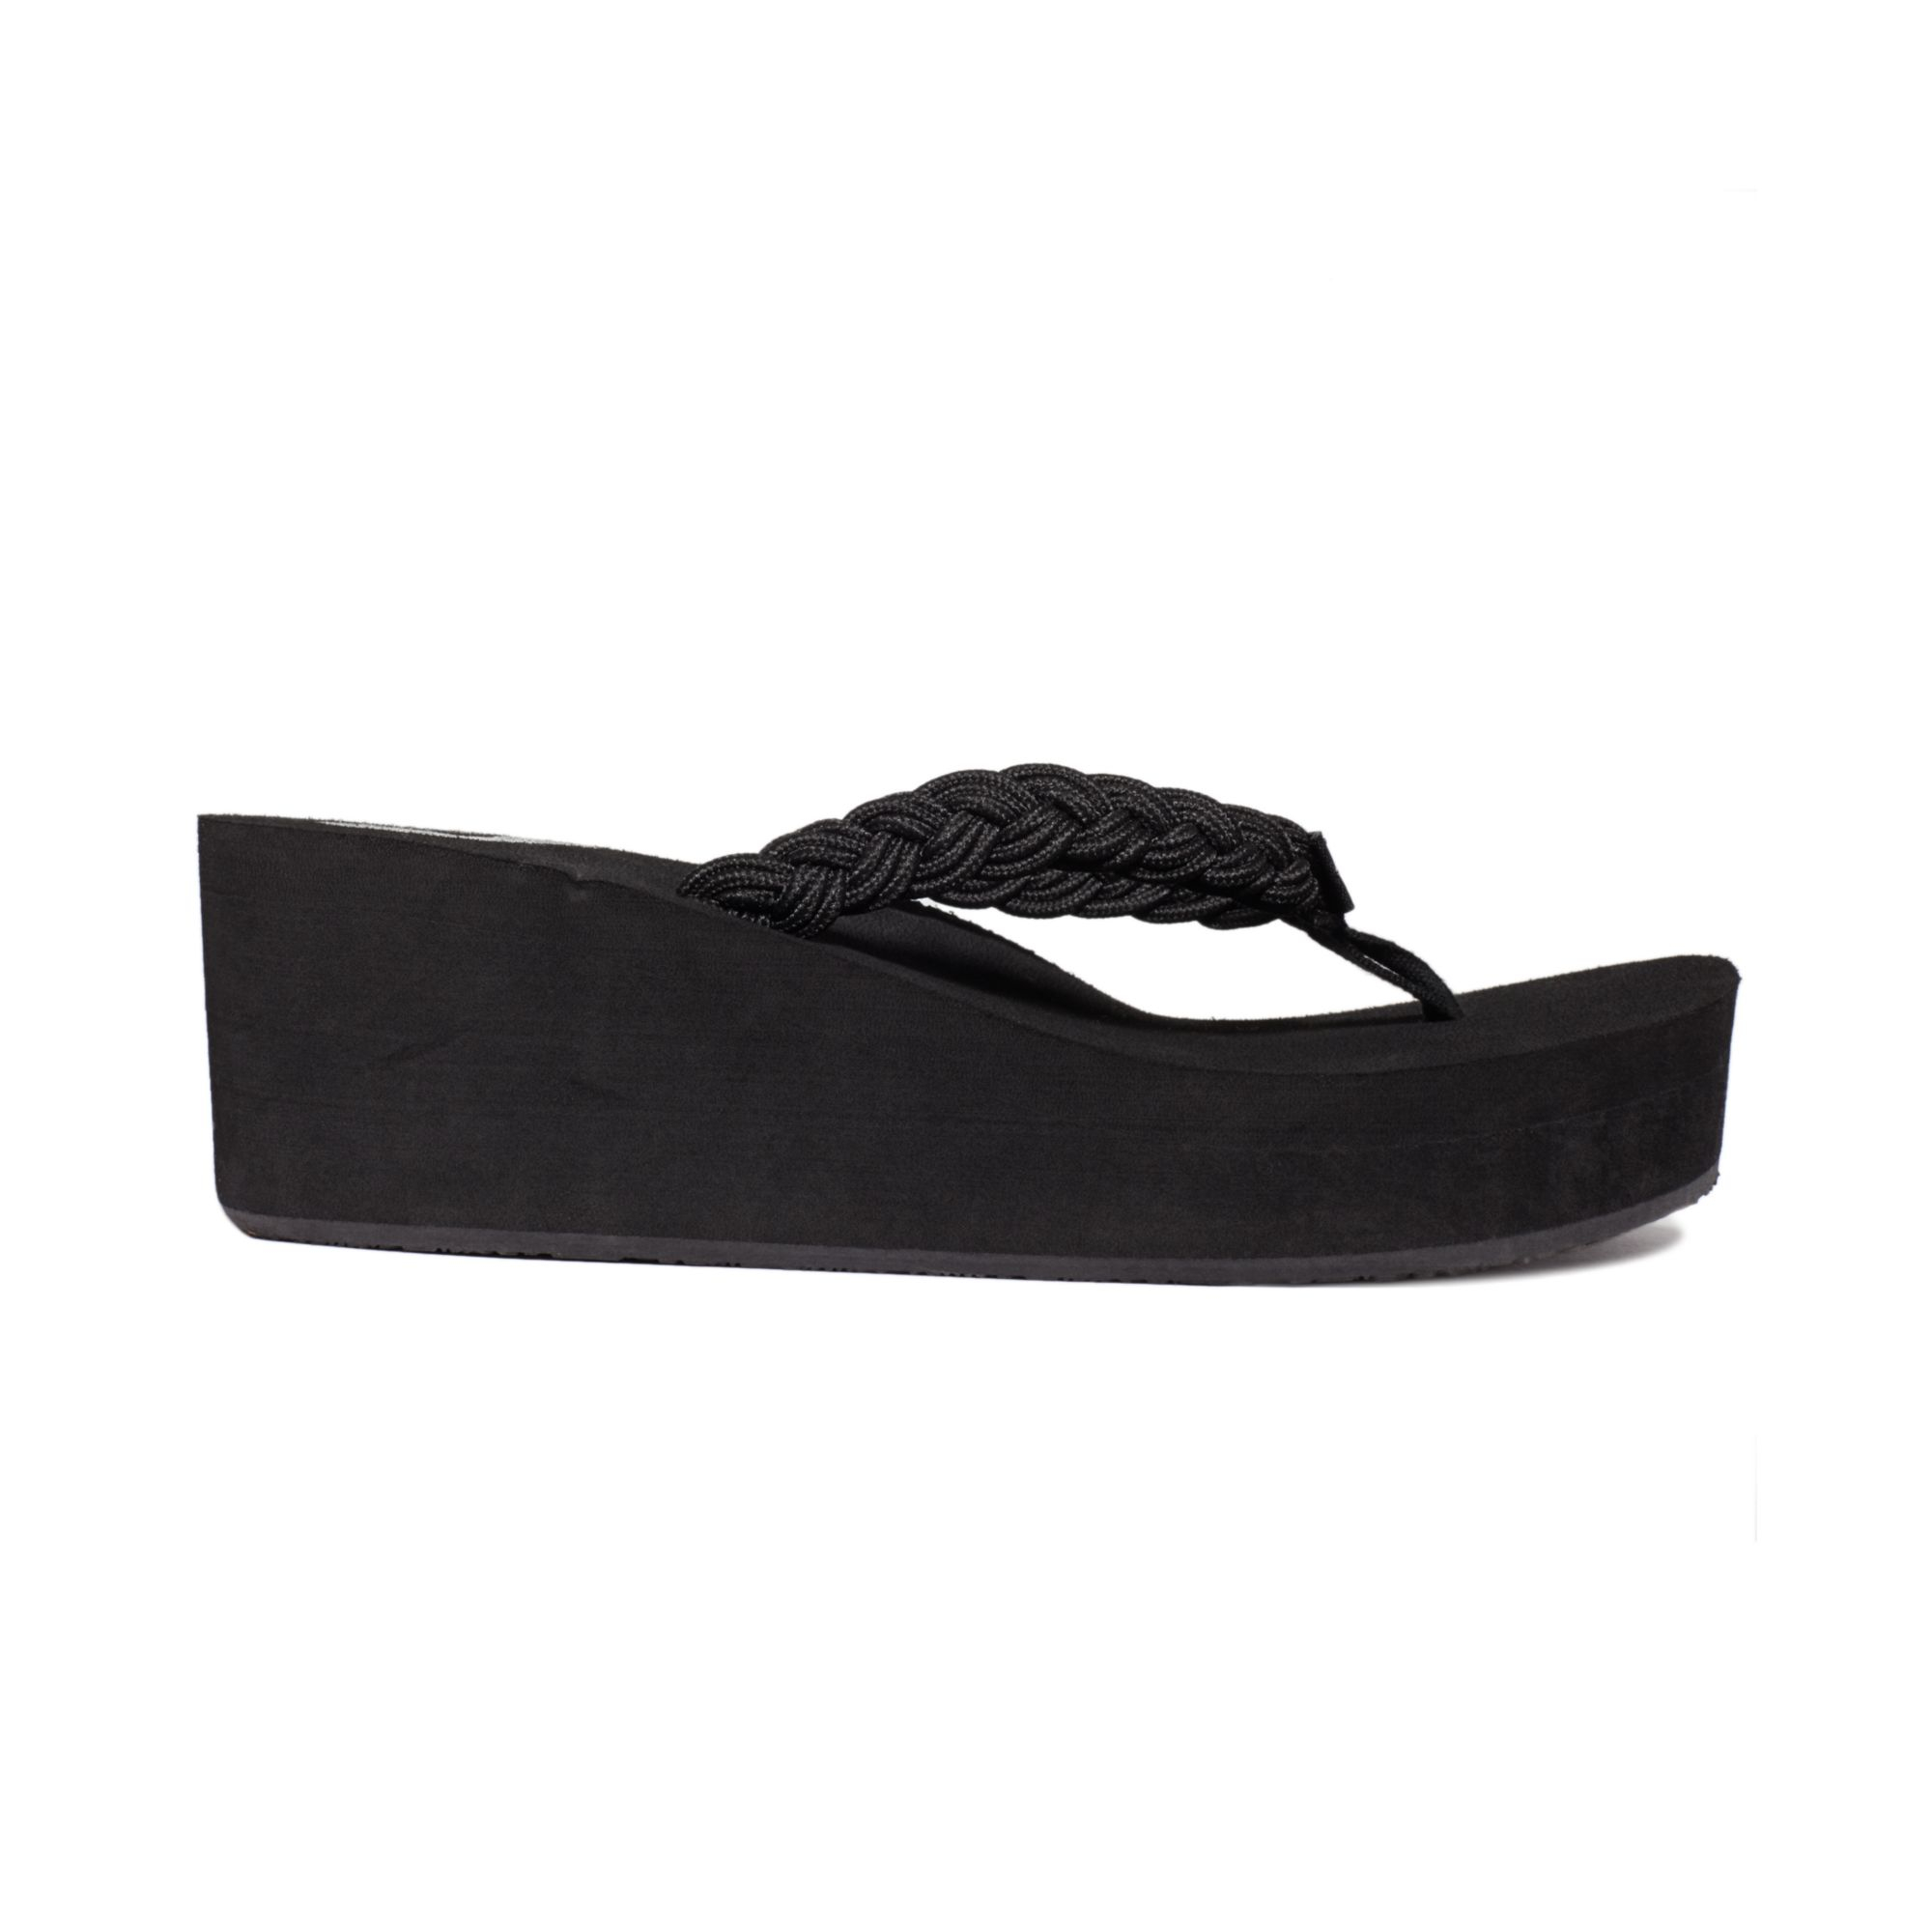 Lyst - Roxy Tidal Wave Braided Wedge Thong Sandals In Black-6824